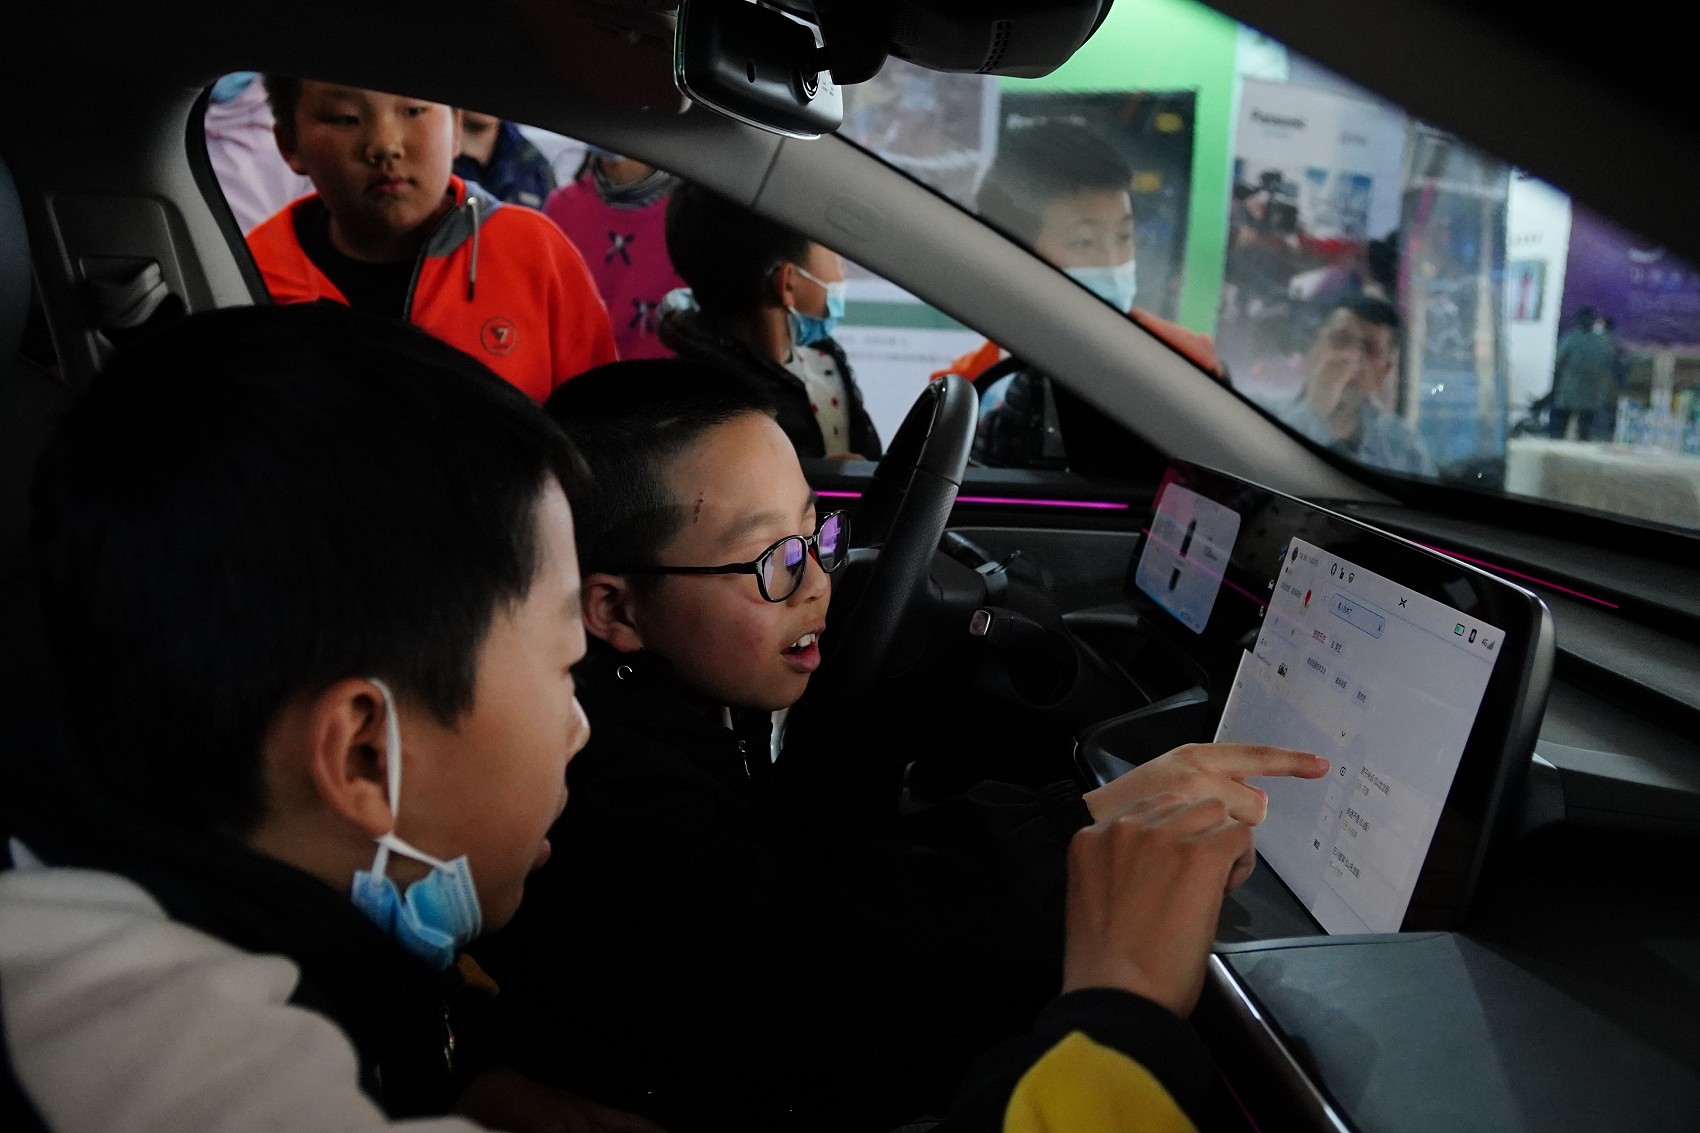 Digital transformation powers China's talent flows amid epidemic: report